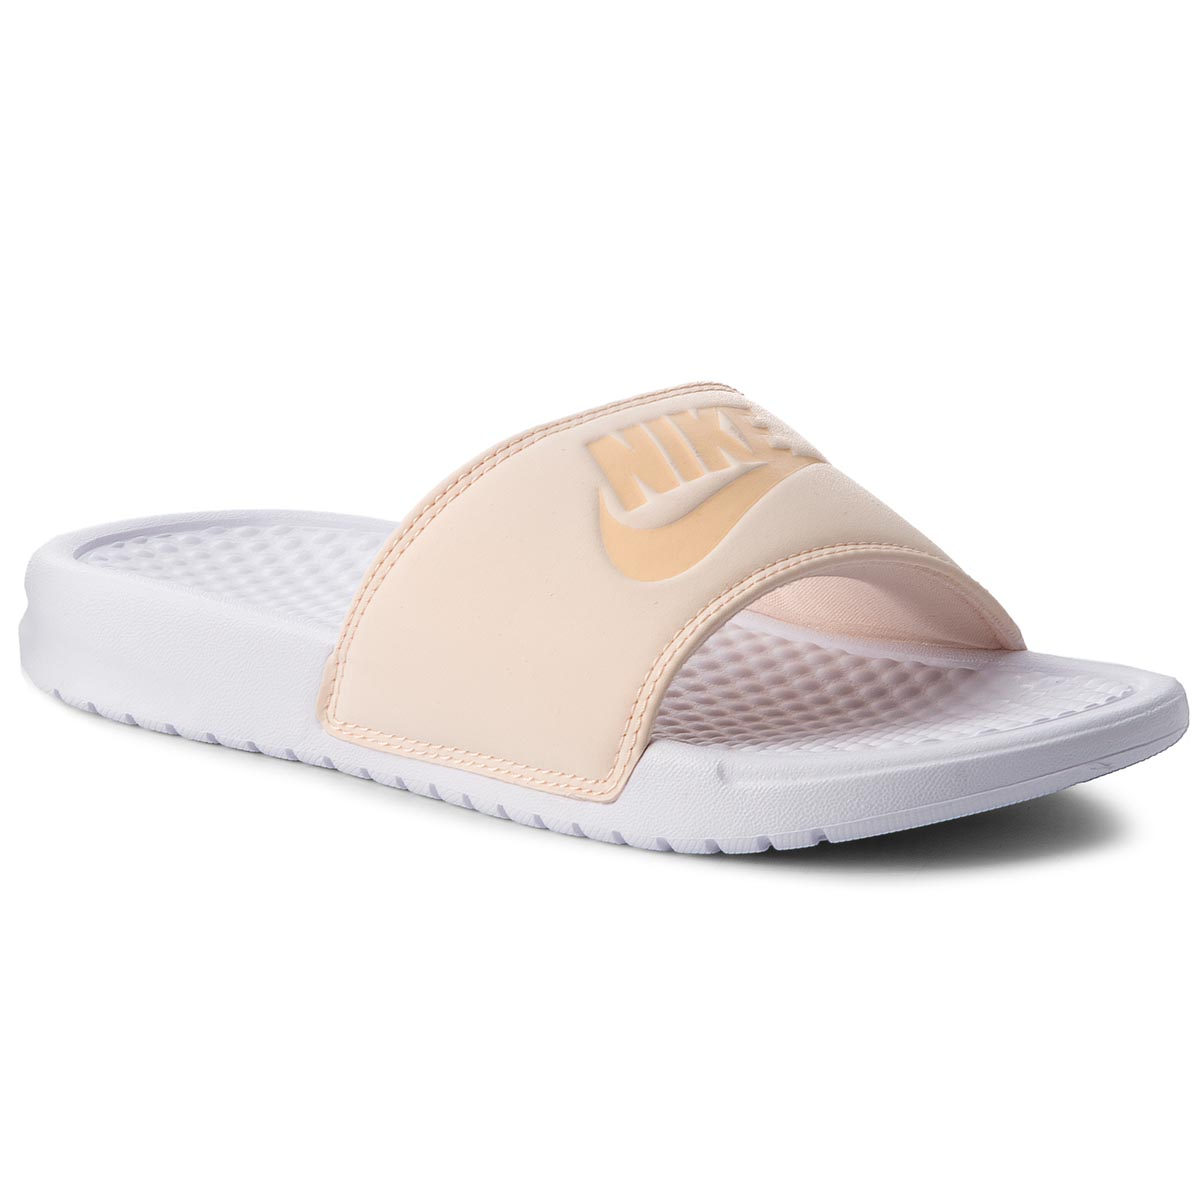 Șlapi NIKE - Benassi Jdi Pastel Qs AA4150 800 Orange Quartz/Ice Peach/White